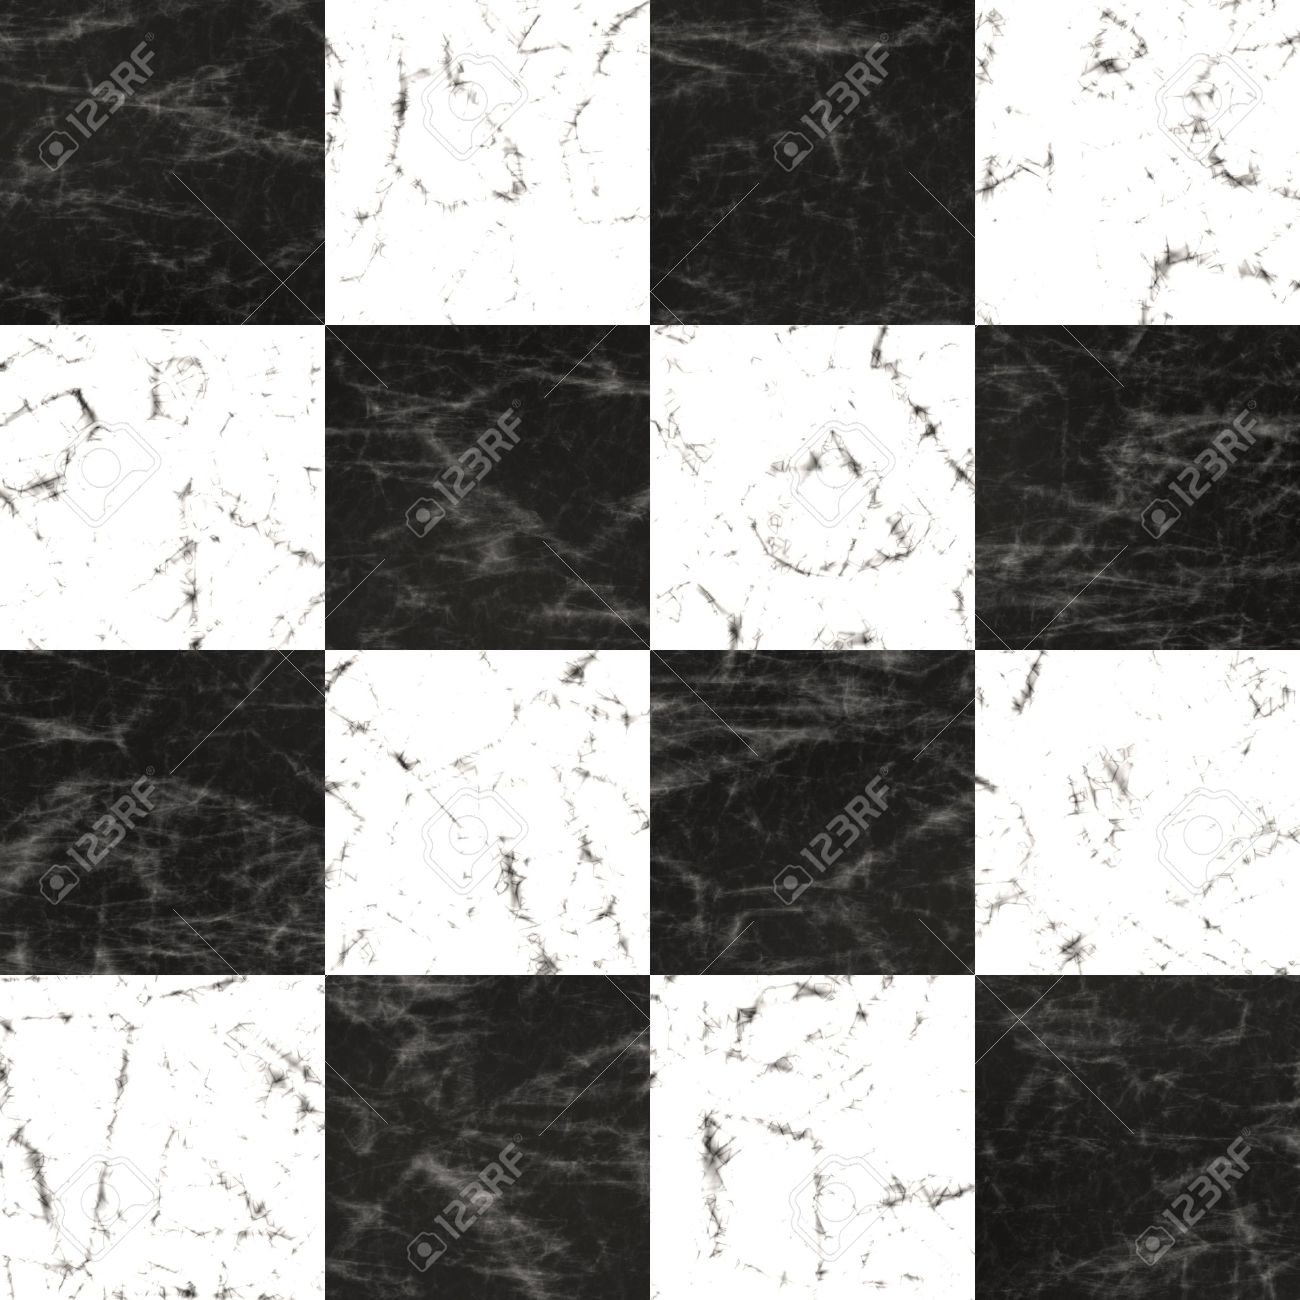 Seamless black and white checkered texture stock images image - Checkerboard High Quality Seamless Checkerboard Marble Floor Tiling Stock Photo